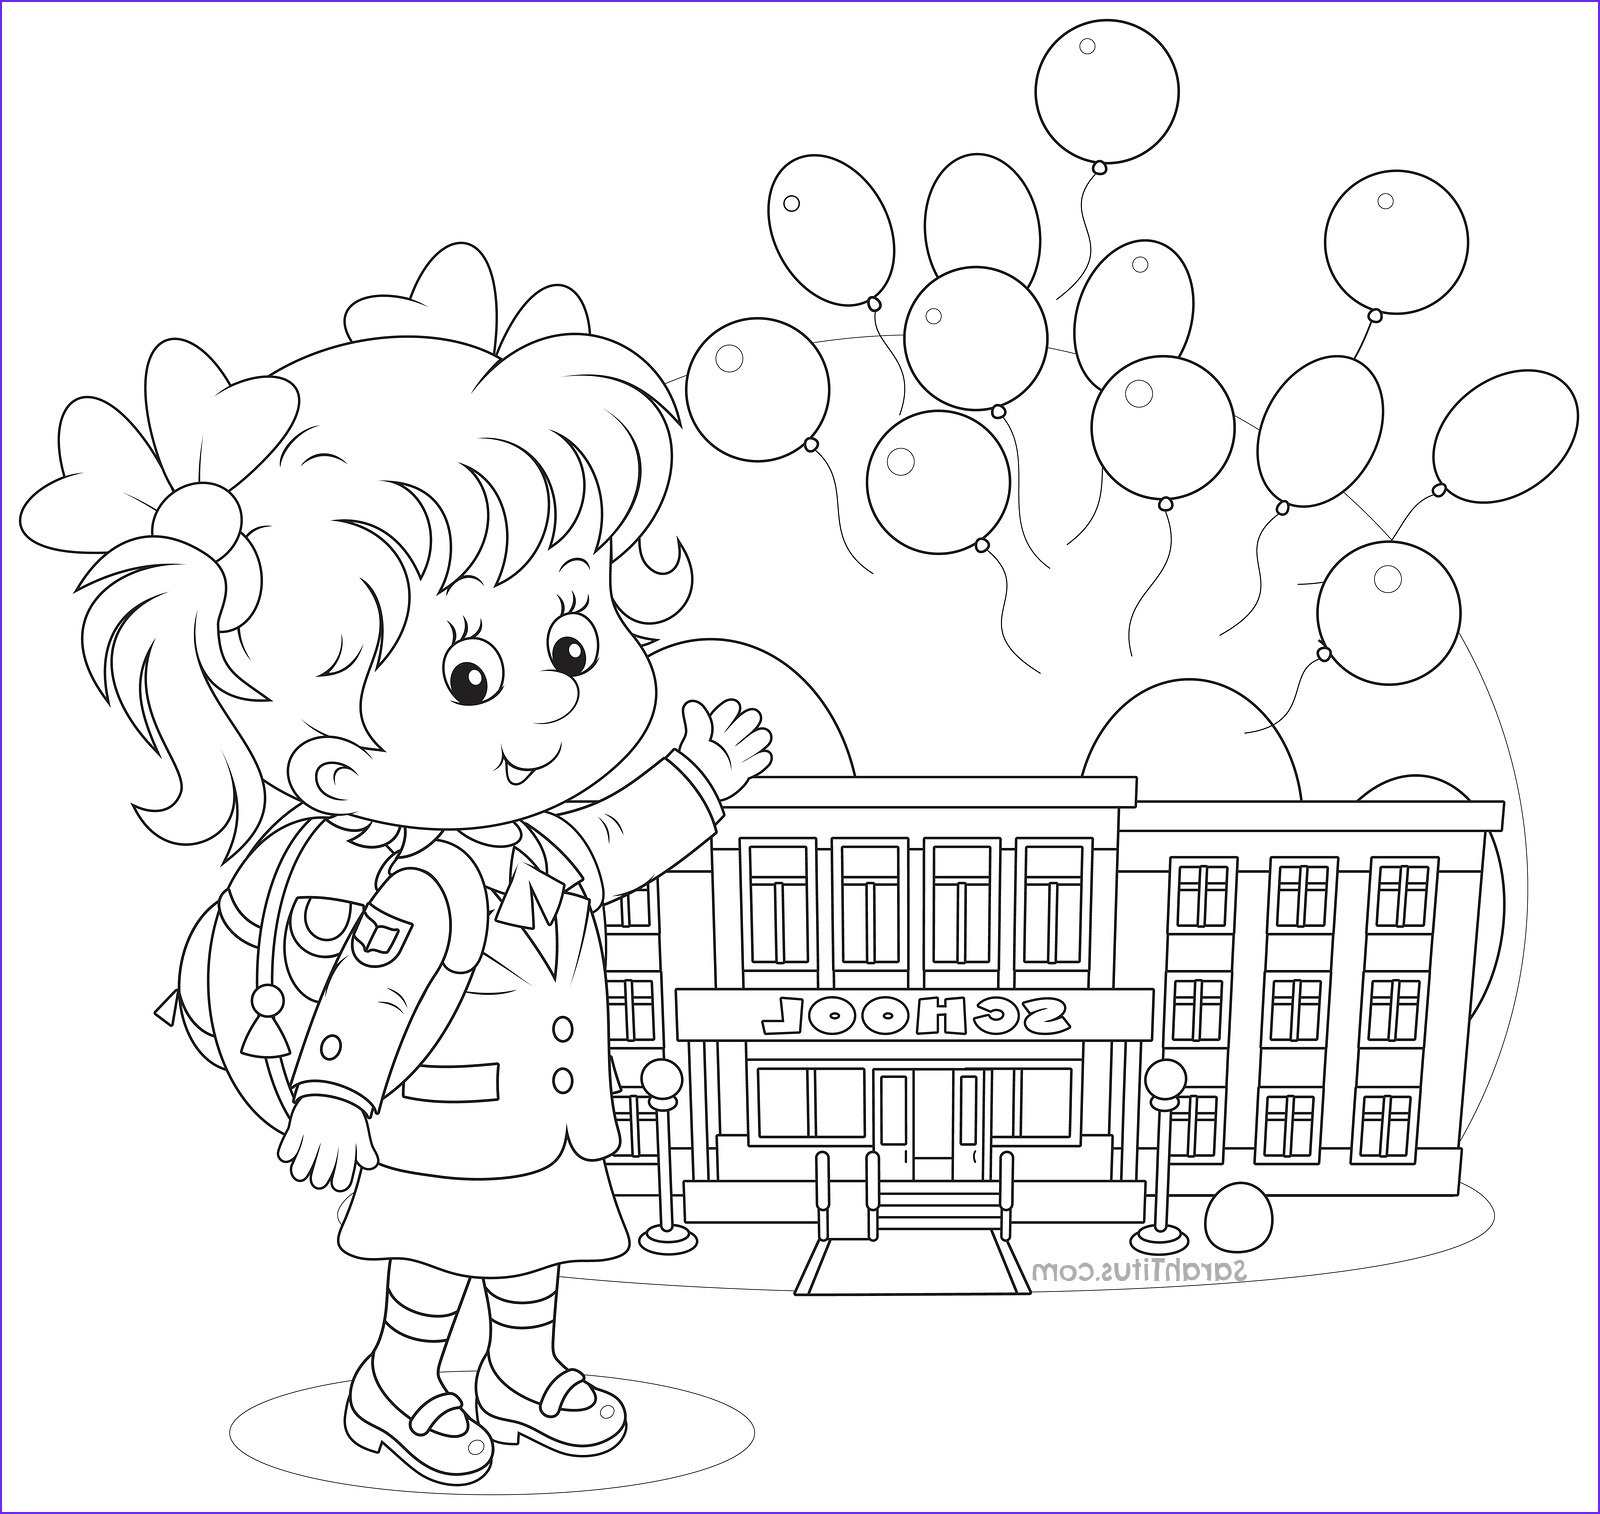 Schools Coloring Page Beautiful Stock Back to School Coloring Pages Sarah Titus